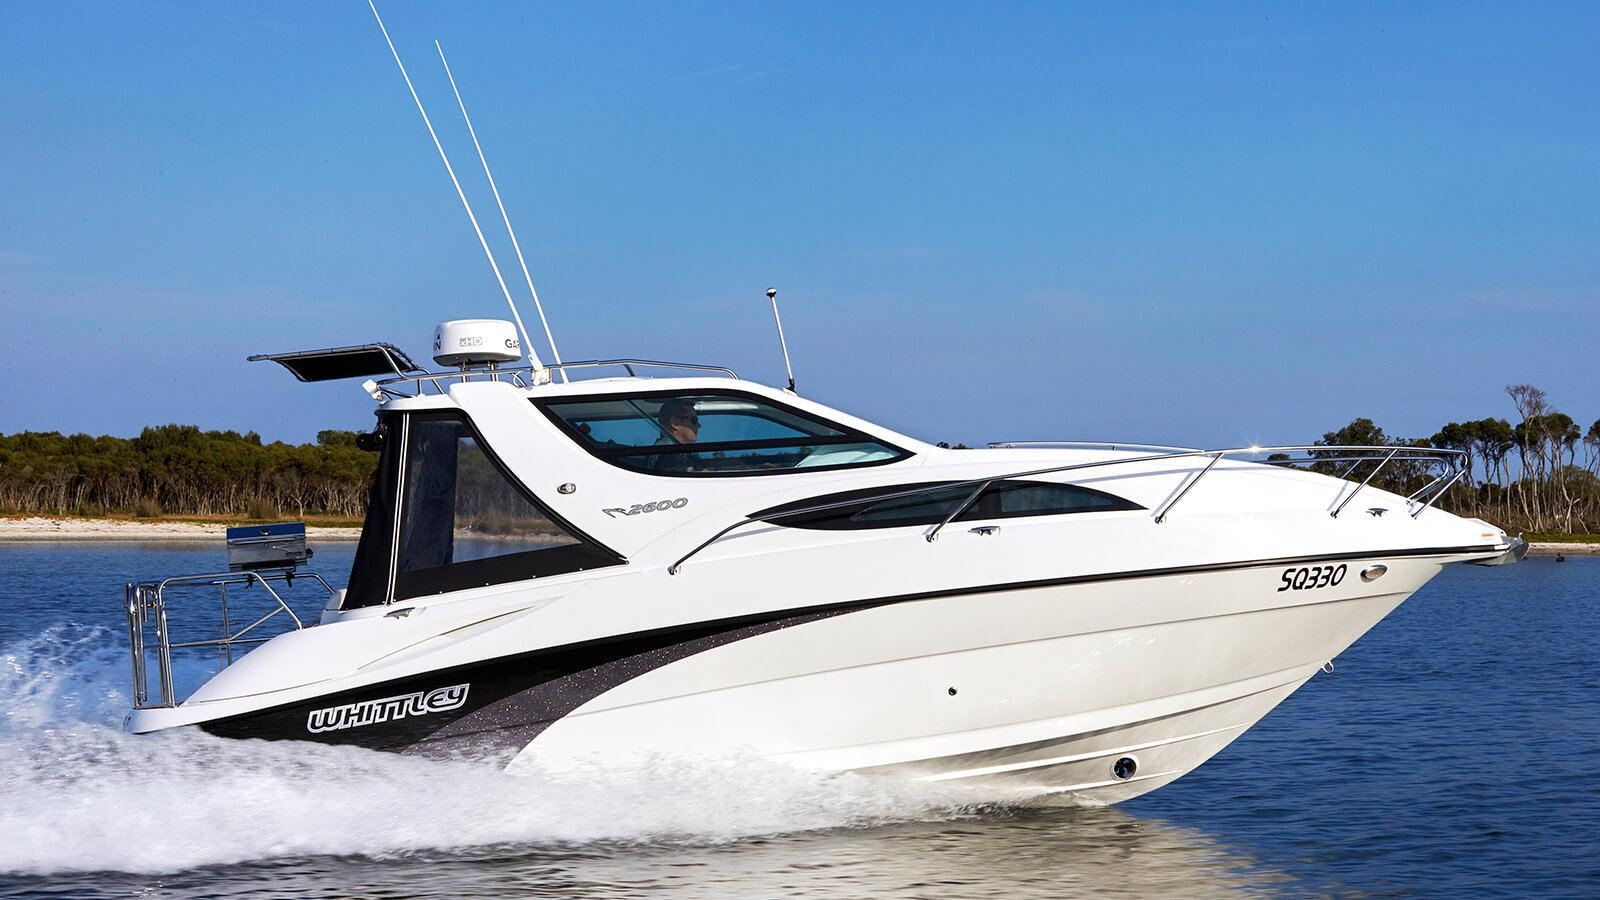 cr-2600-hero New Boats